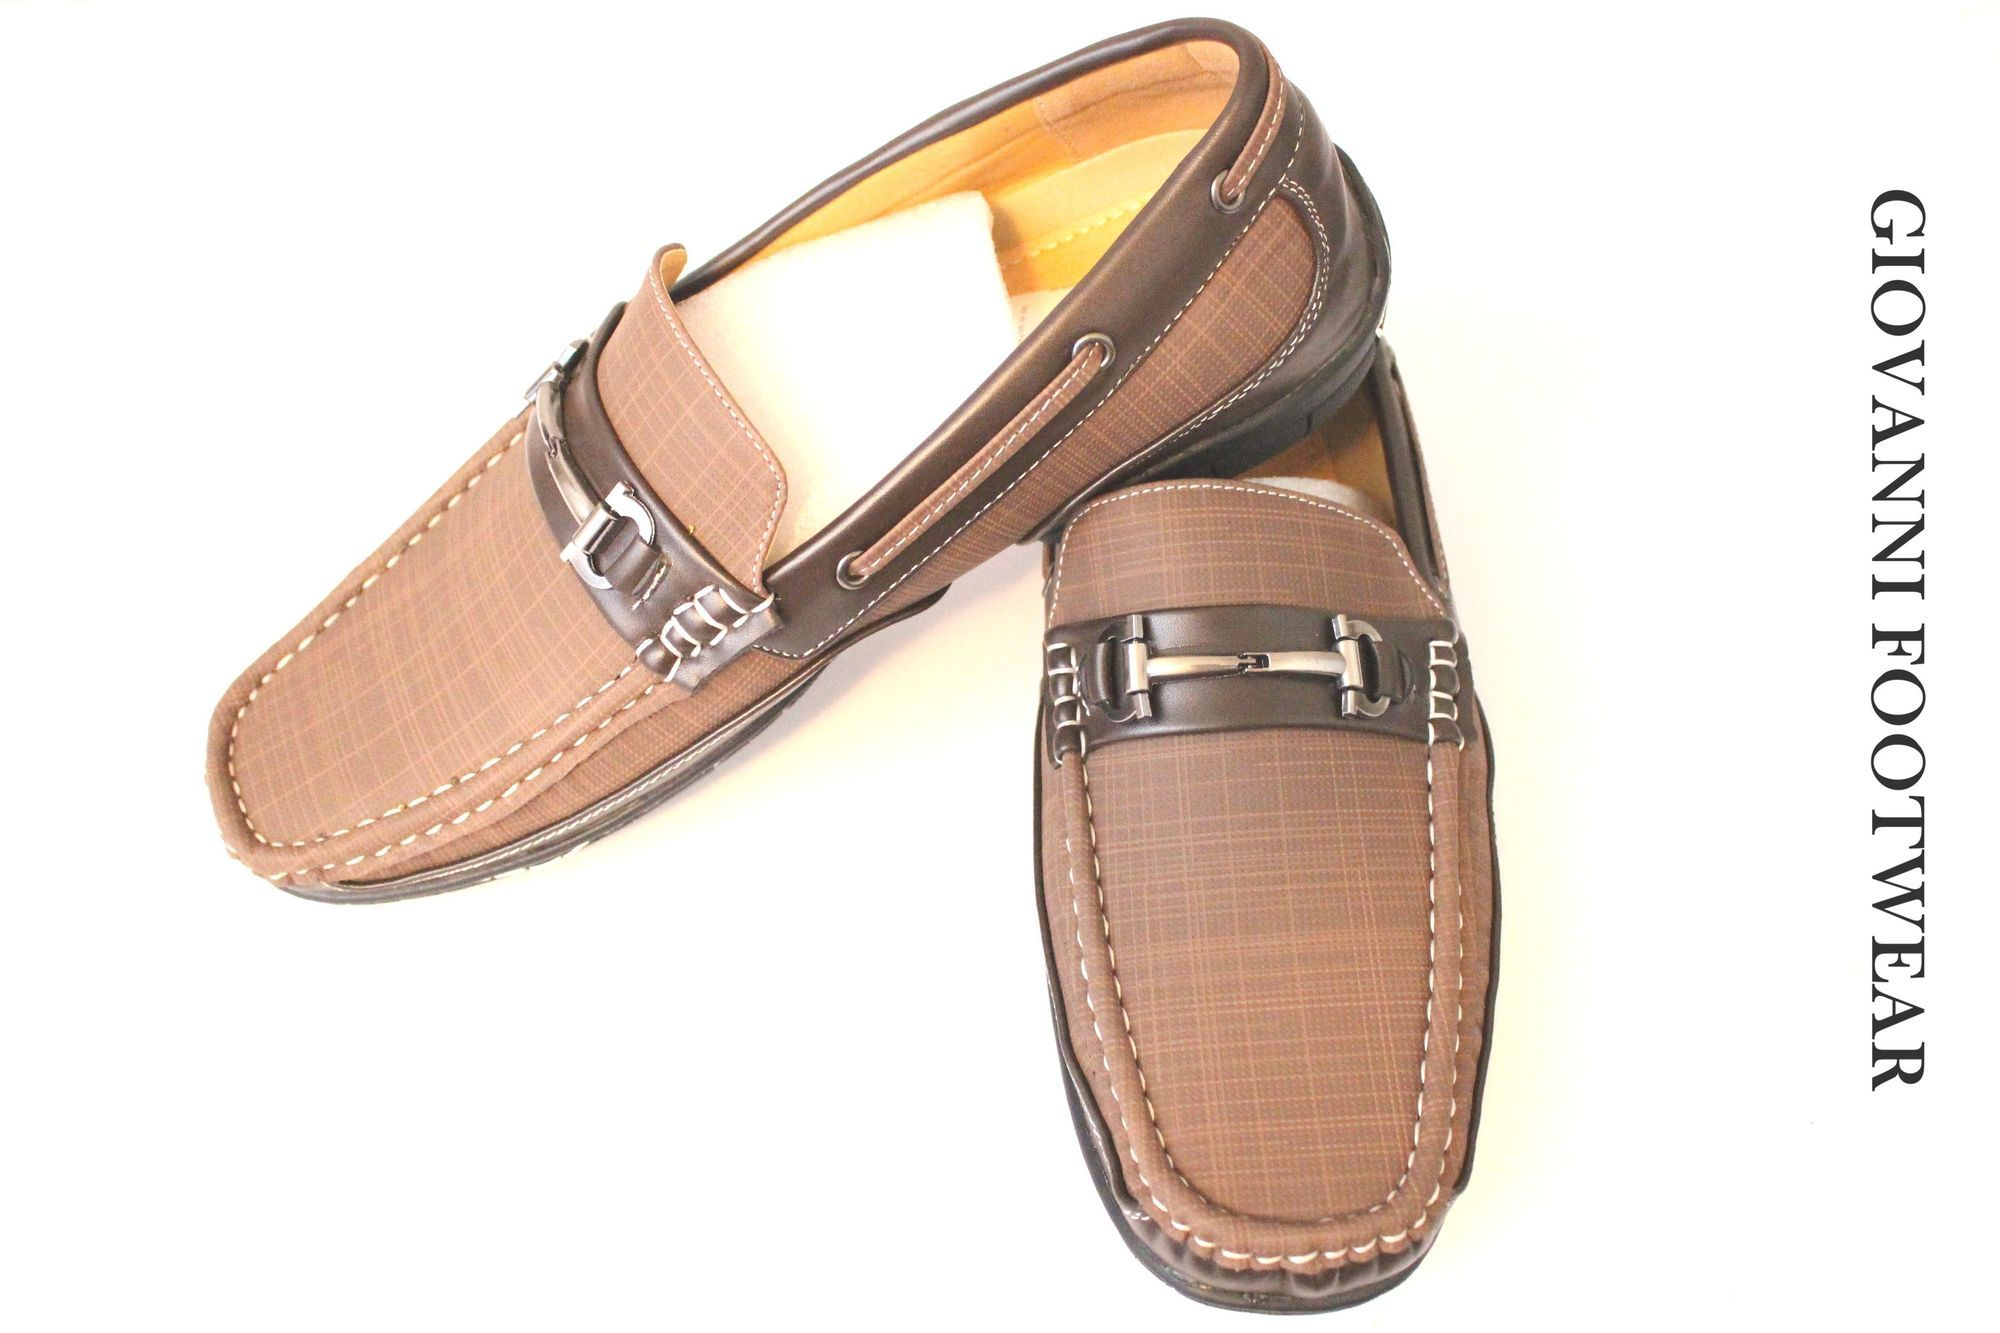 5016edefb64 Casual Slip on Giovanni Loafer Dress Shoes - Brown | CASUAL SLIP ON ...